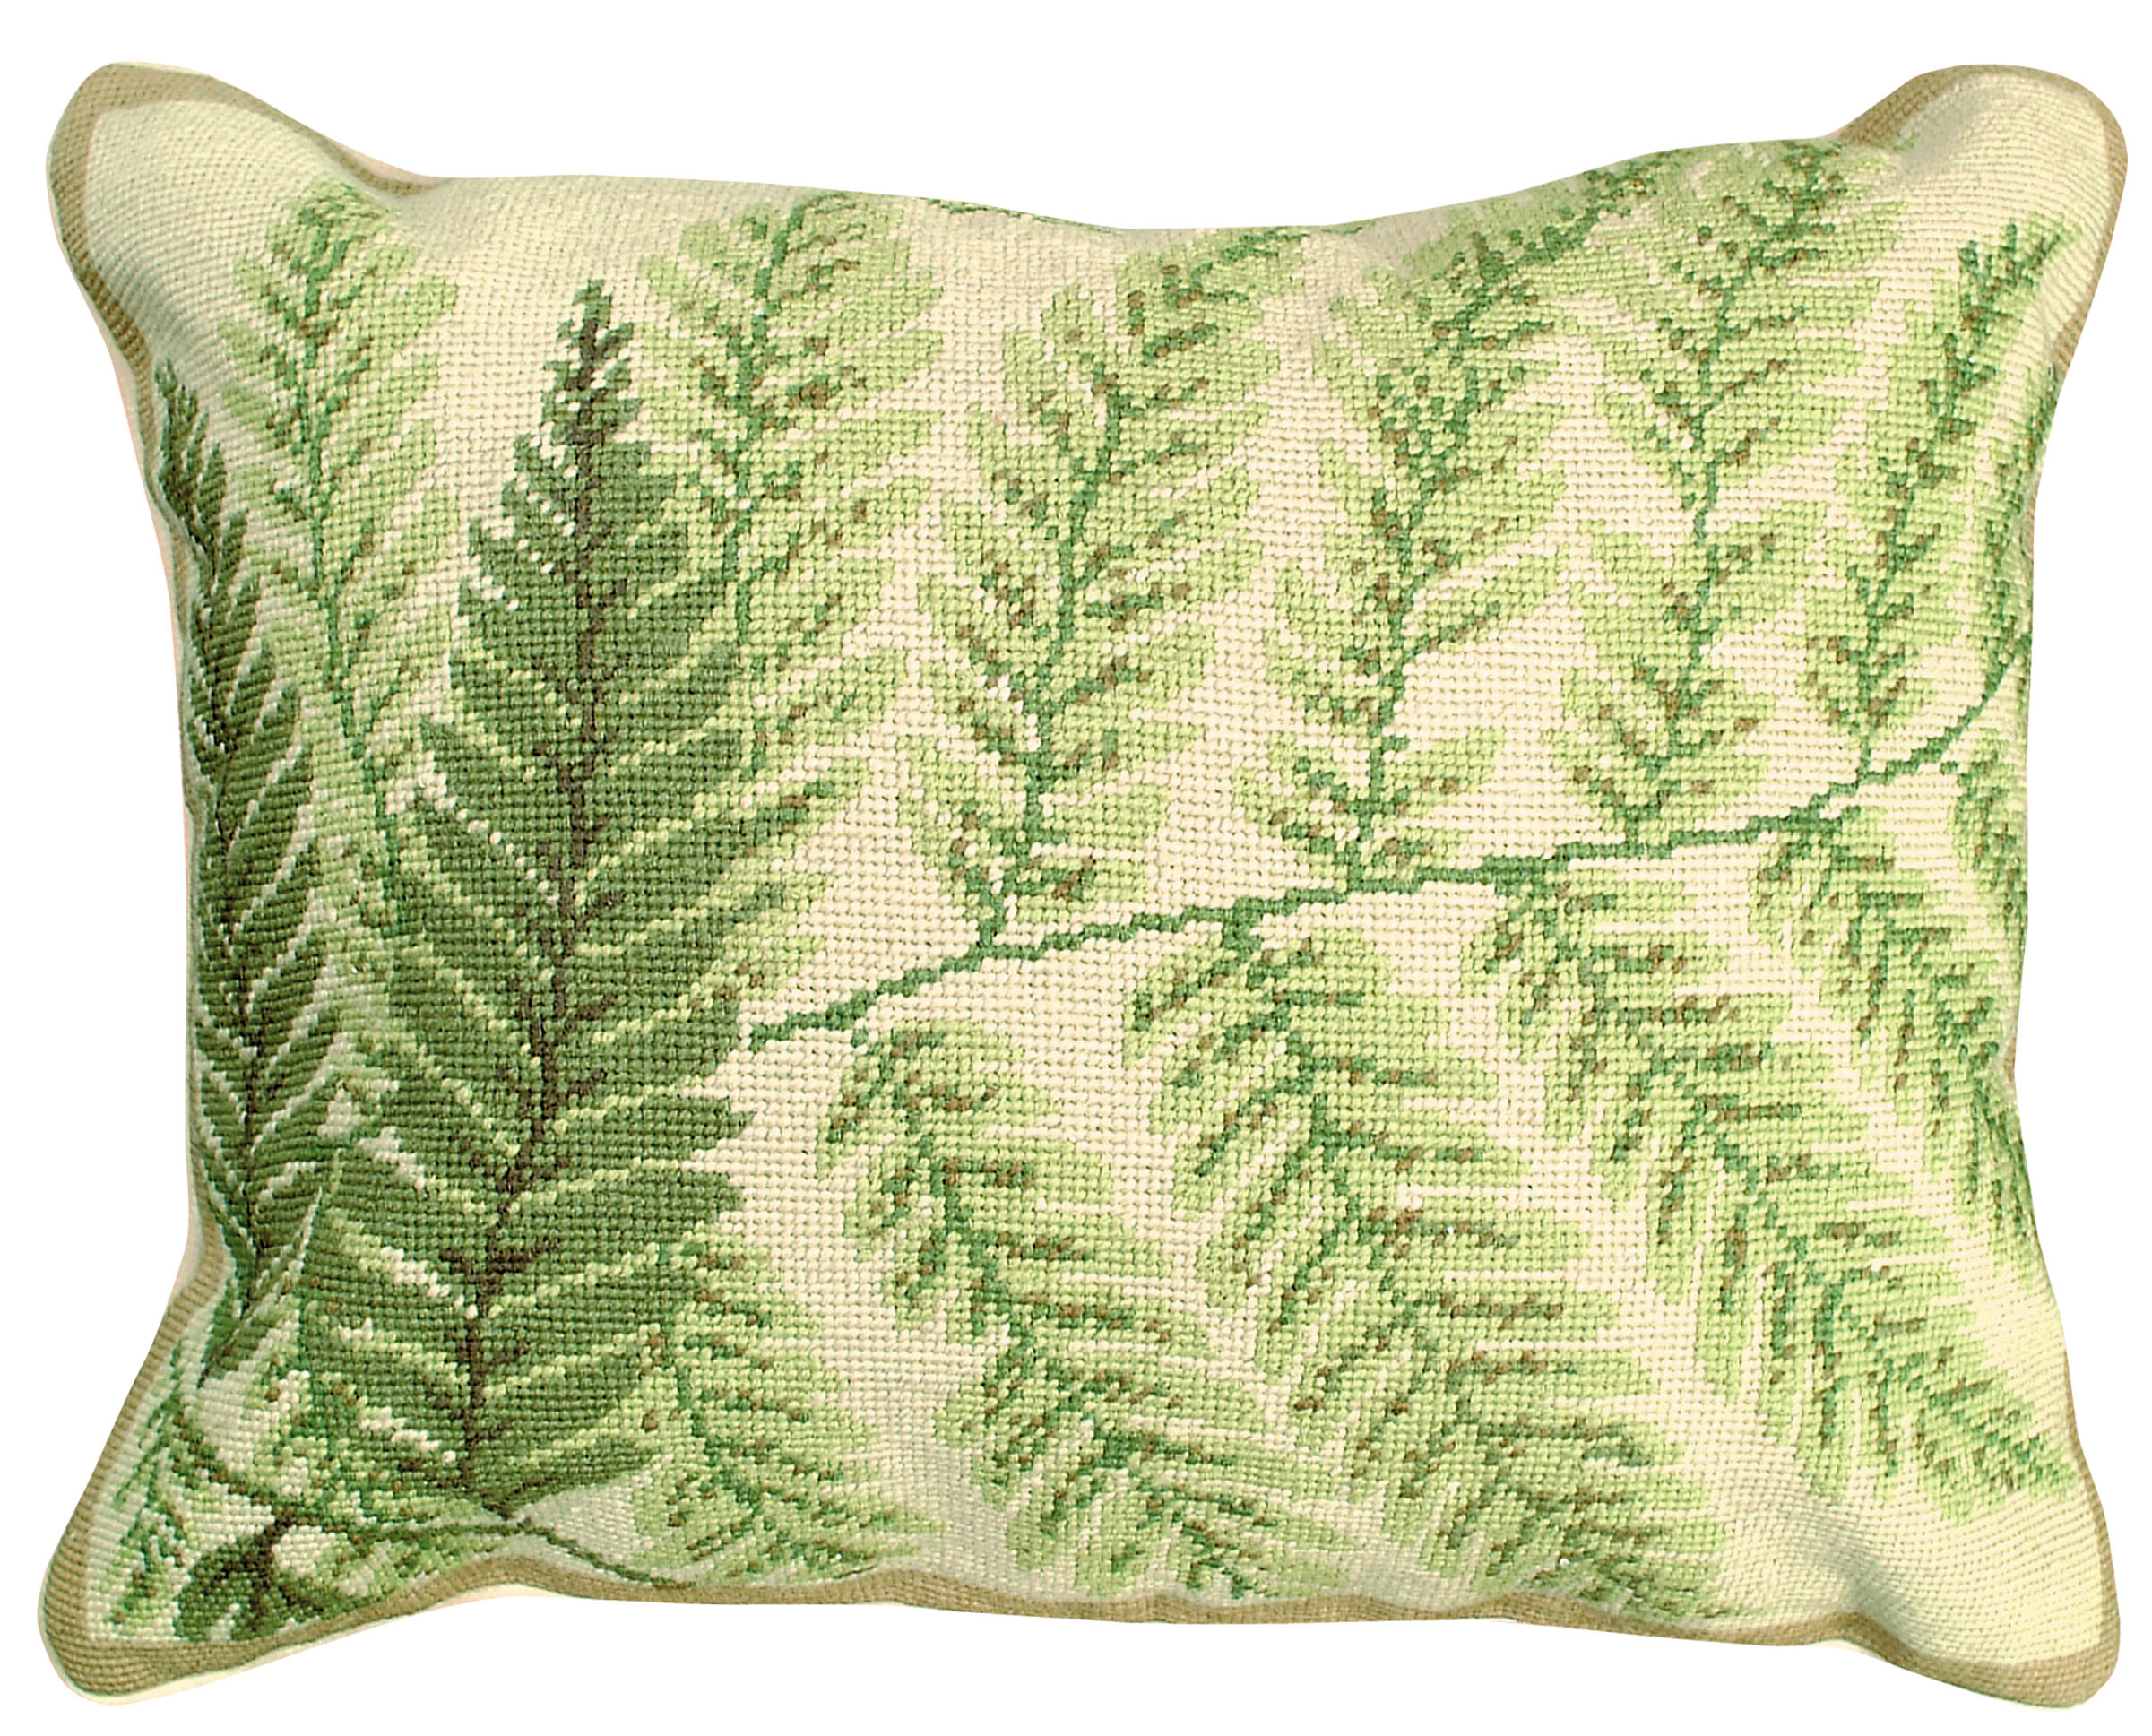 collection by designs needlepoint home dann htm classic pillows pillow from hand made elegant